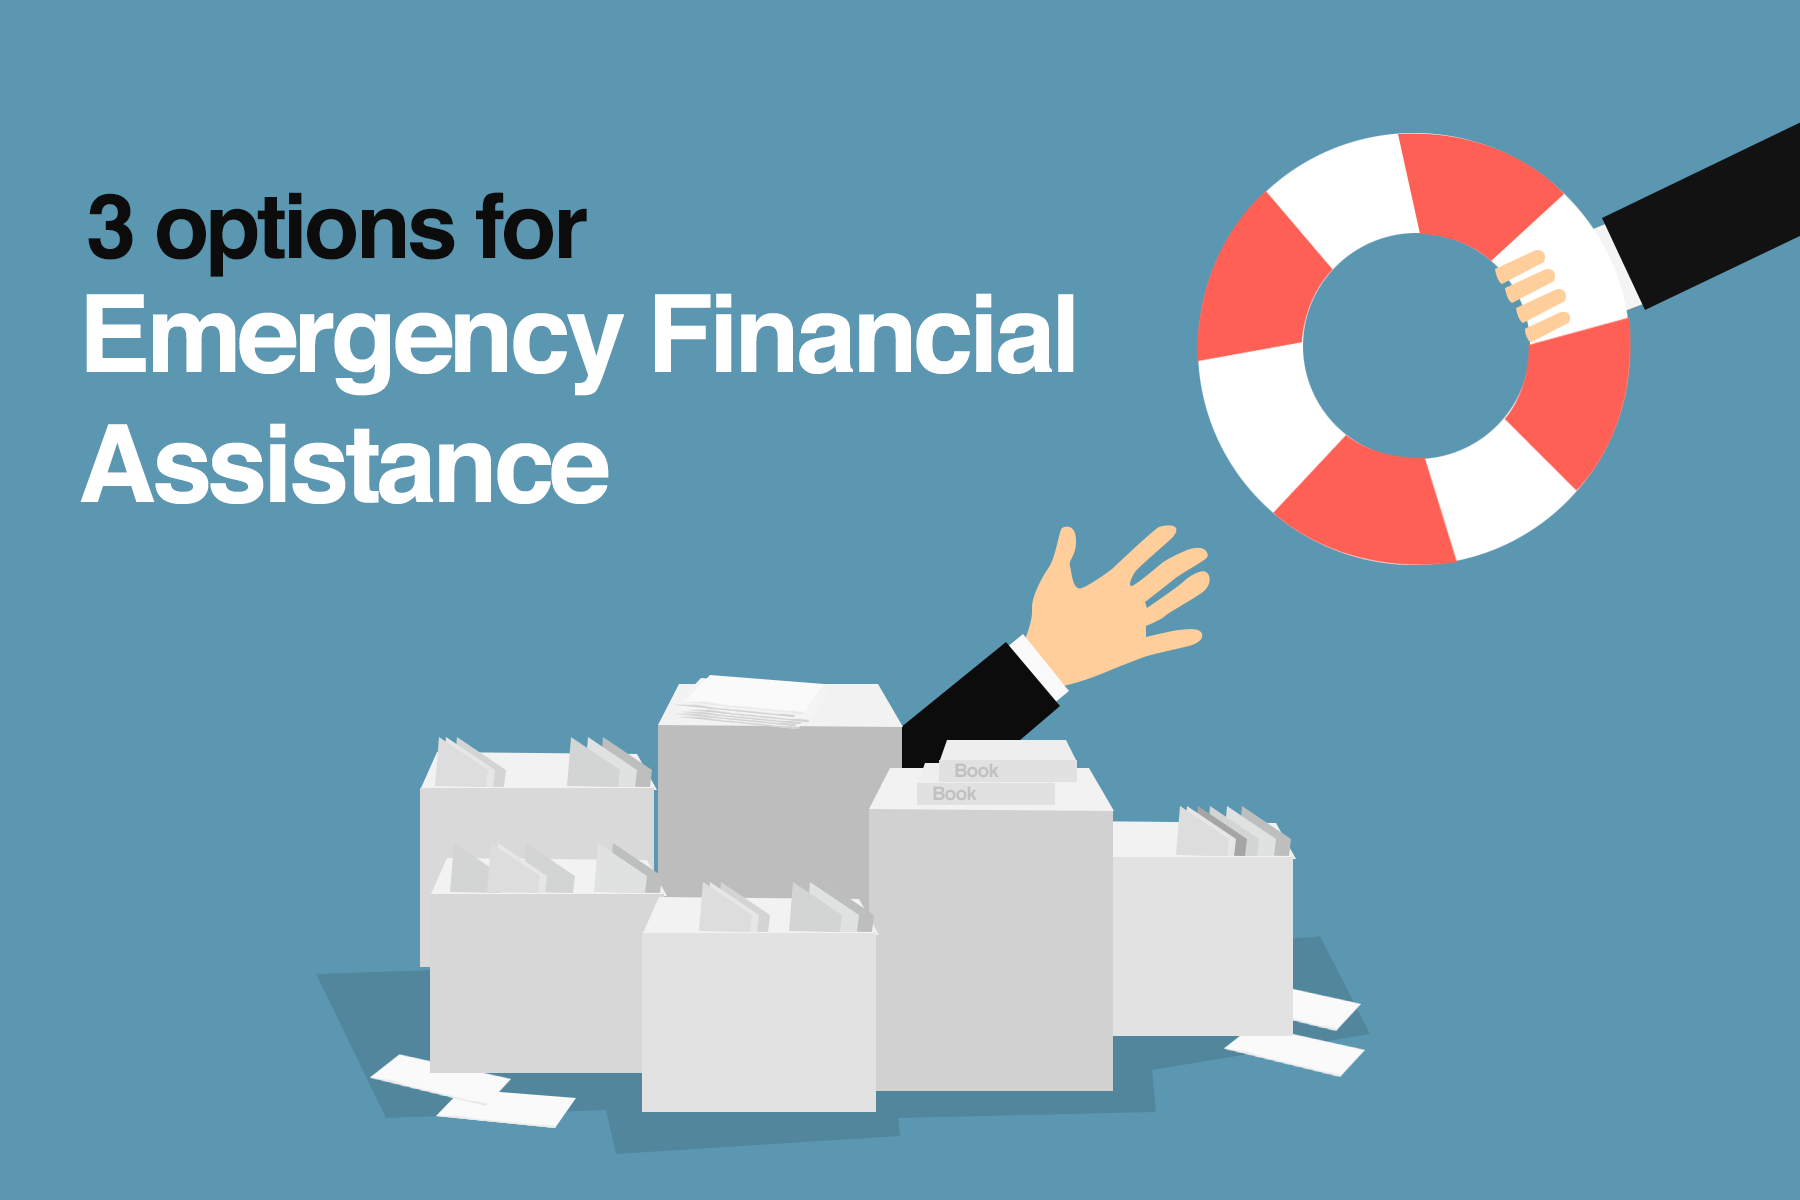 3 Options to Receive Emergency Financial Assistance